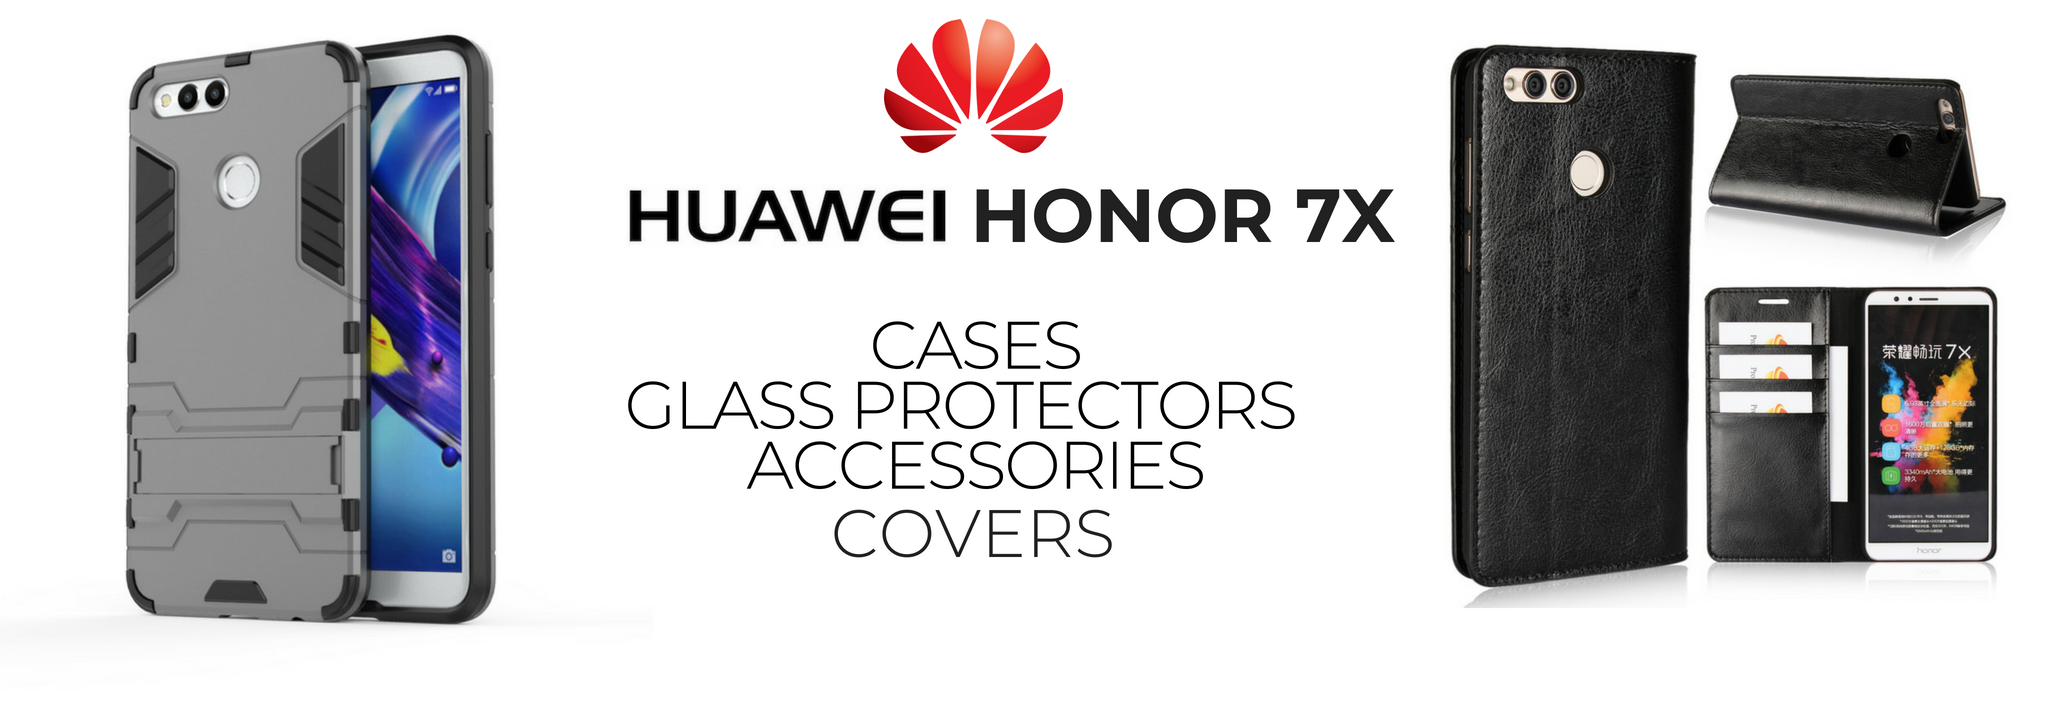 Huawei Honor 7X Case & Cover, Accessories &Glass Protector